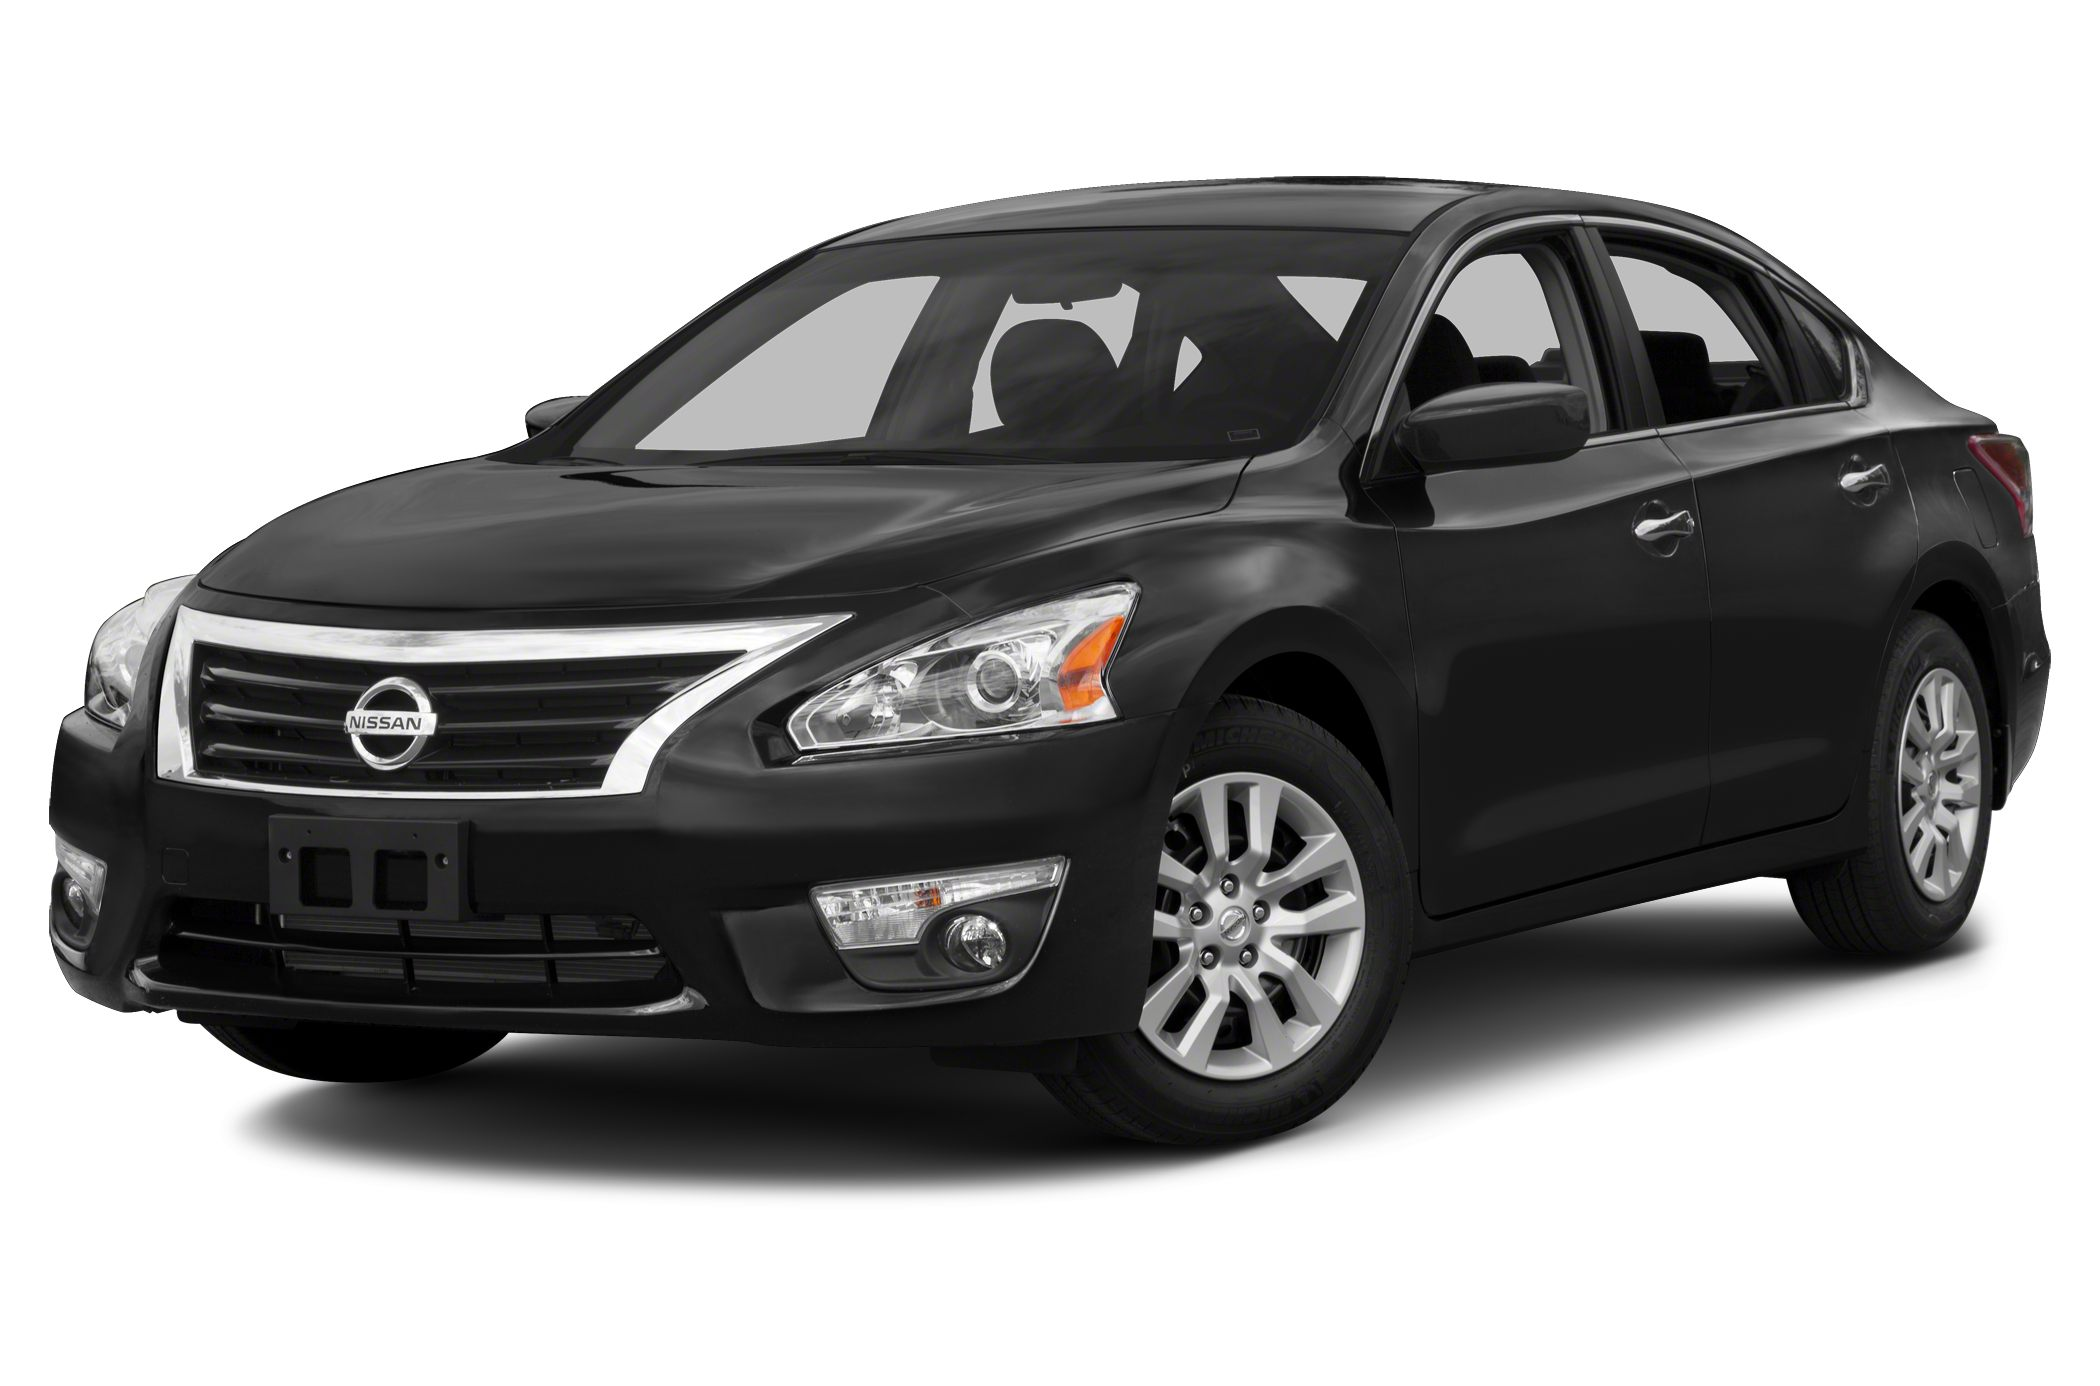 2013 Nissan Altima 25 Vehicle Detailed Recent Oil Change and Passed Dealer Inspection Sticking